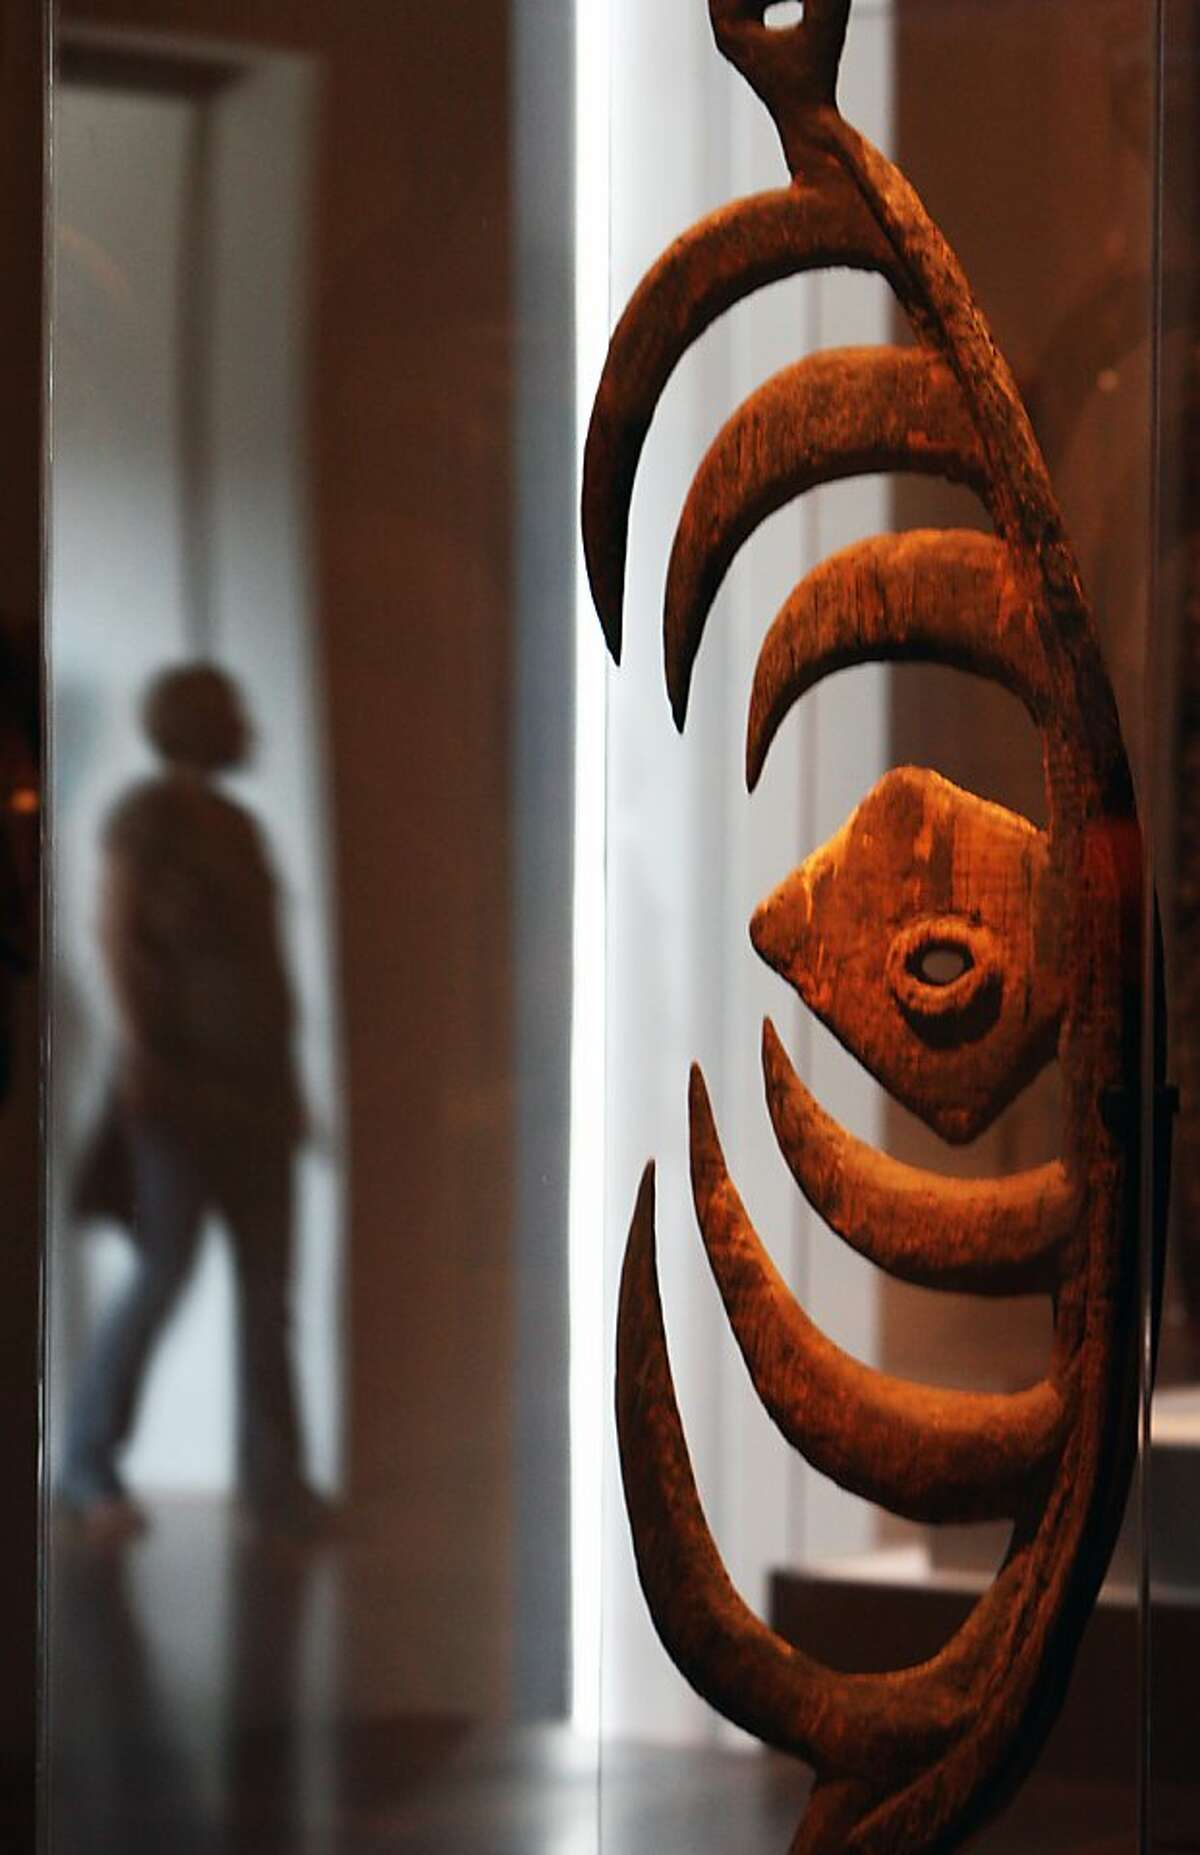 A visitor to the de Young Nuseum is reflected off the case housing a Cult Object, made by Bahinemo People from the Hunstein Mountains dated 18th-19th century. John Friede - a de Young trustee, donated the Jolika Collection of New Guinean art to the de Young Museum. The collection is now embroiled in an ownership dispute because a week after he gave the collection to the museum, he signed a paper giving the collection to his siblings who want to sell it off. There may also be a dispute from Papua New Guinea who might lay claim that the pieces were improperly taken from the country. Photographed in San Francisco Friday Sept 19, 2008.